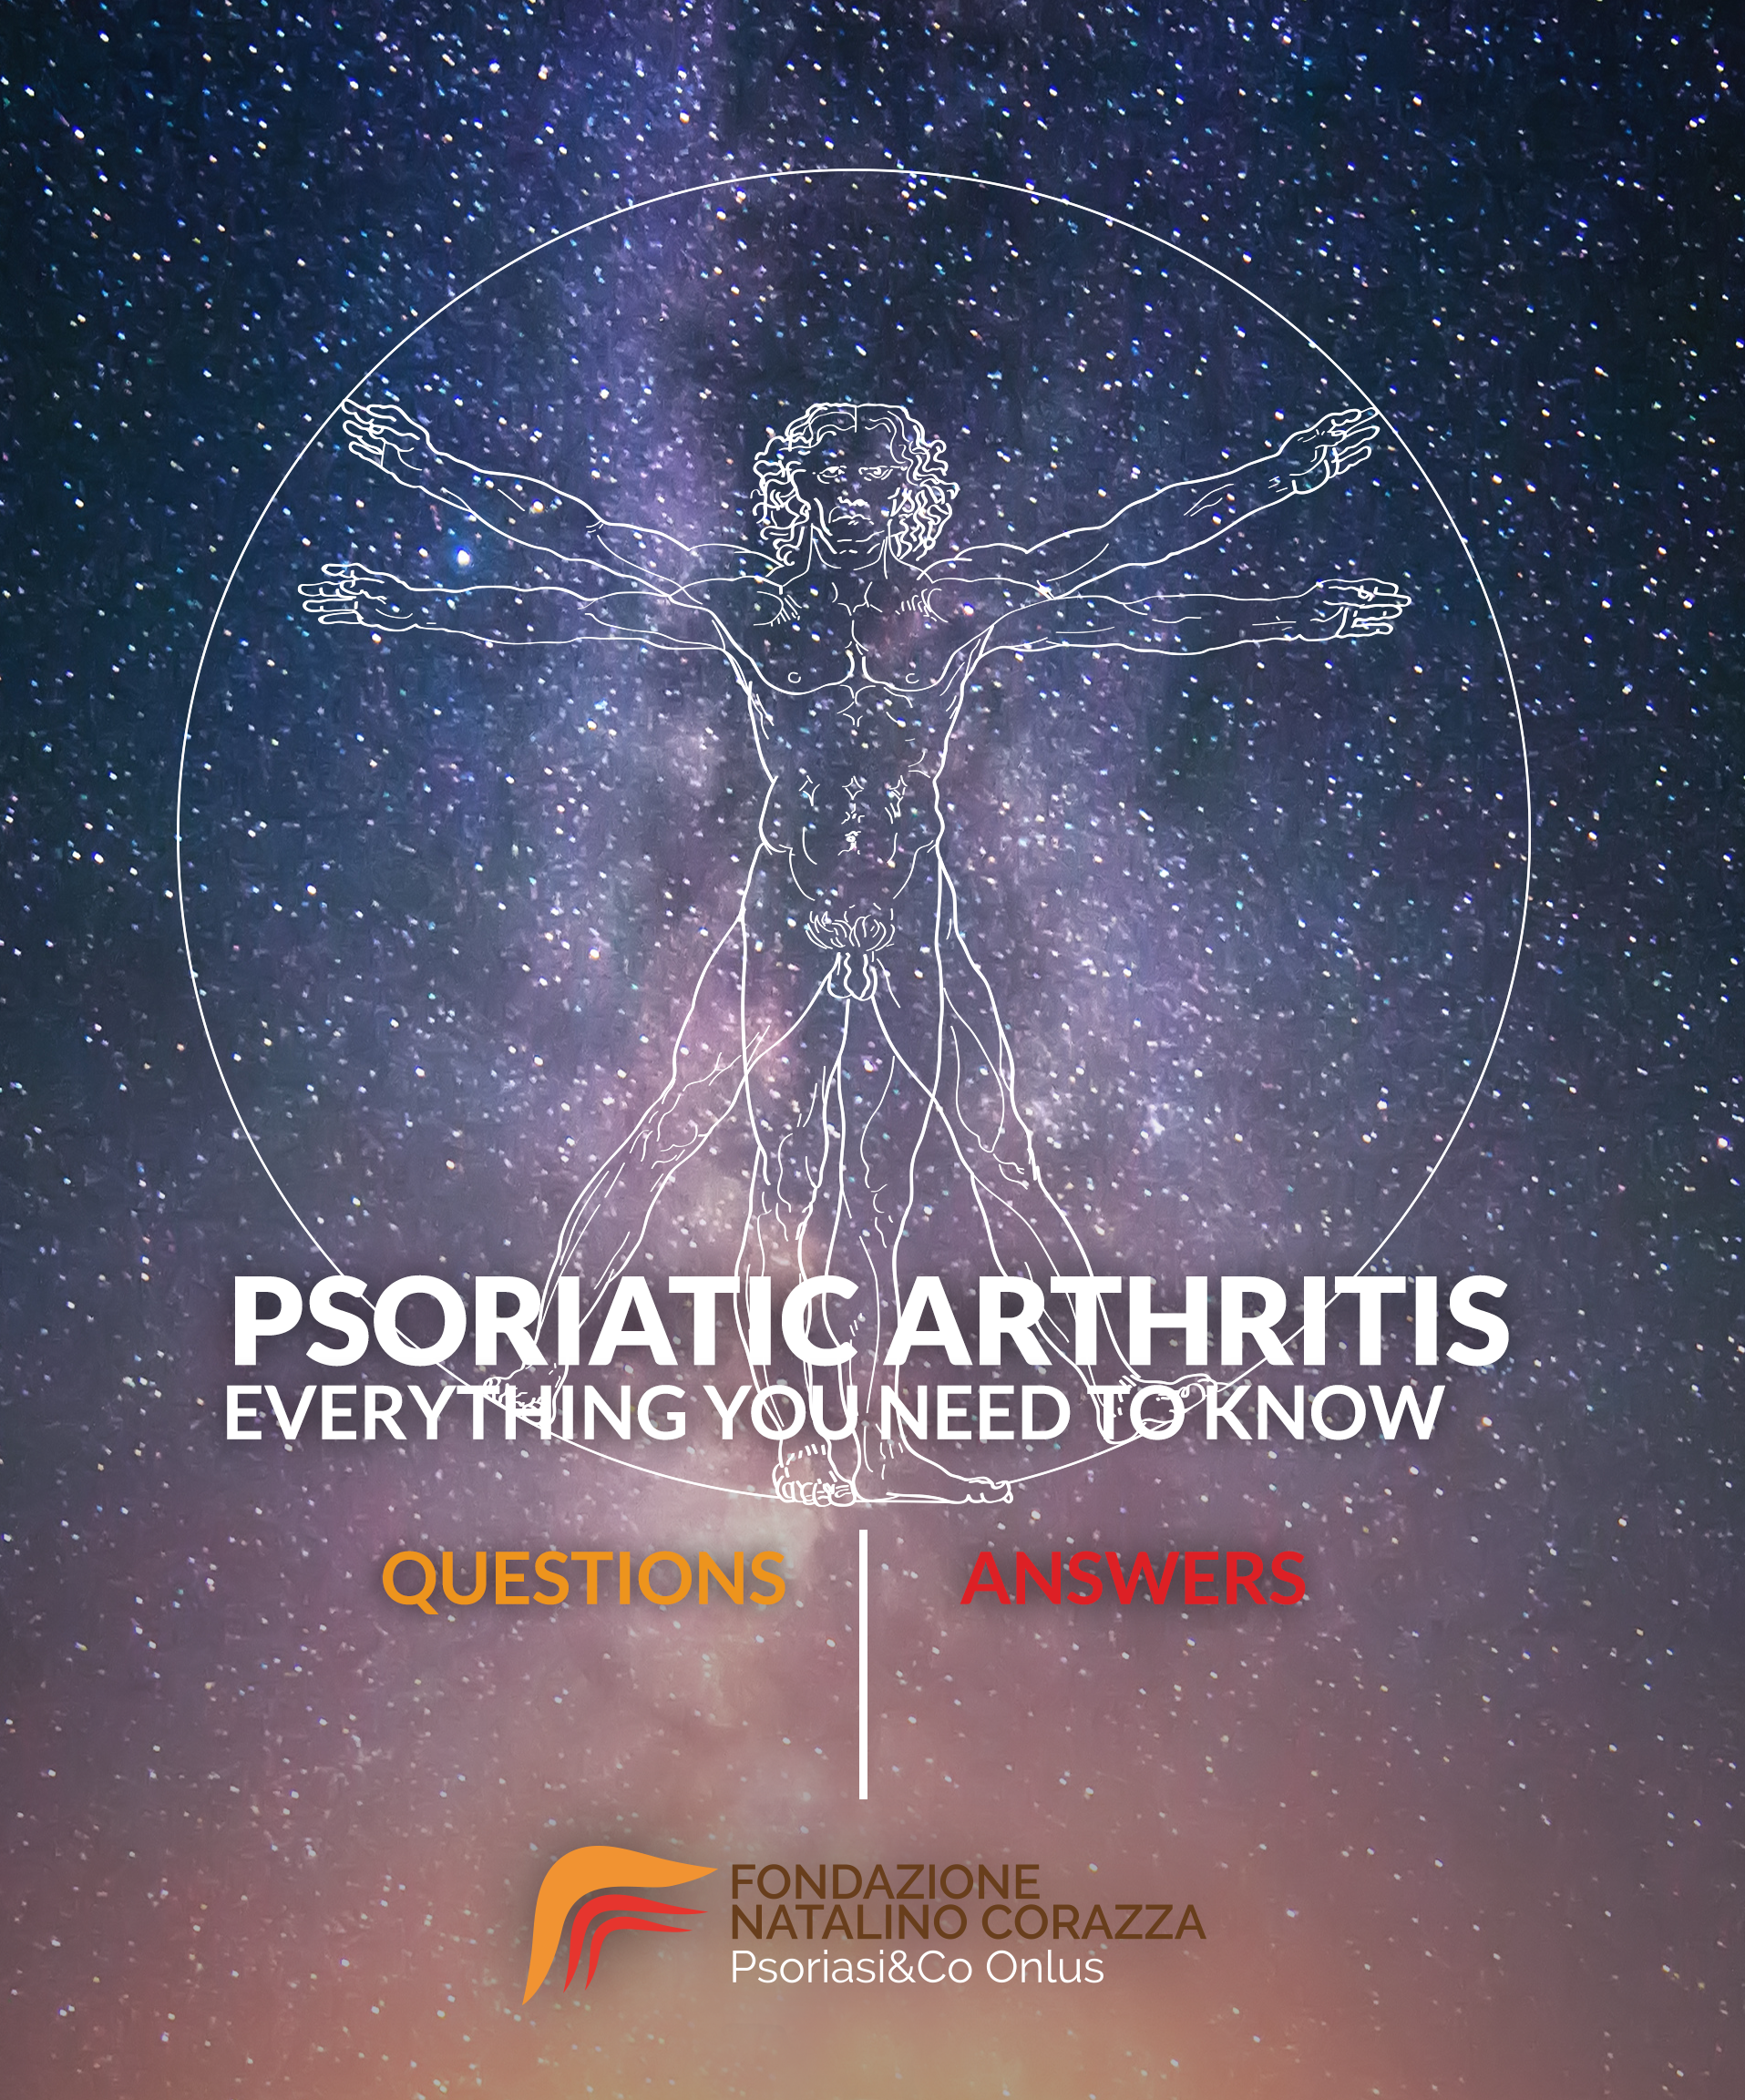 Psoriatic arthritis guide